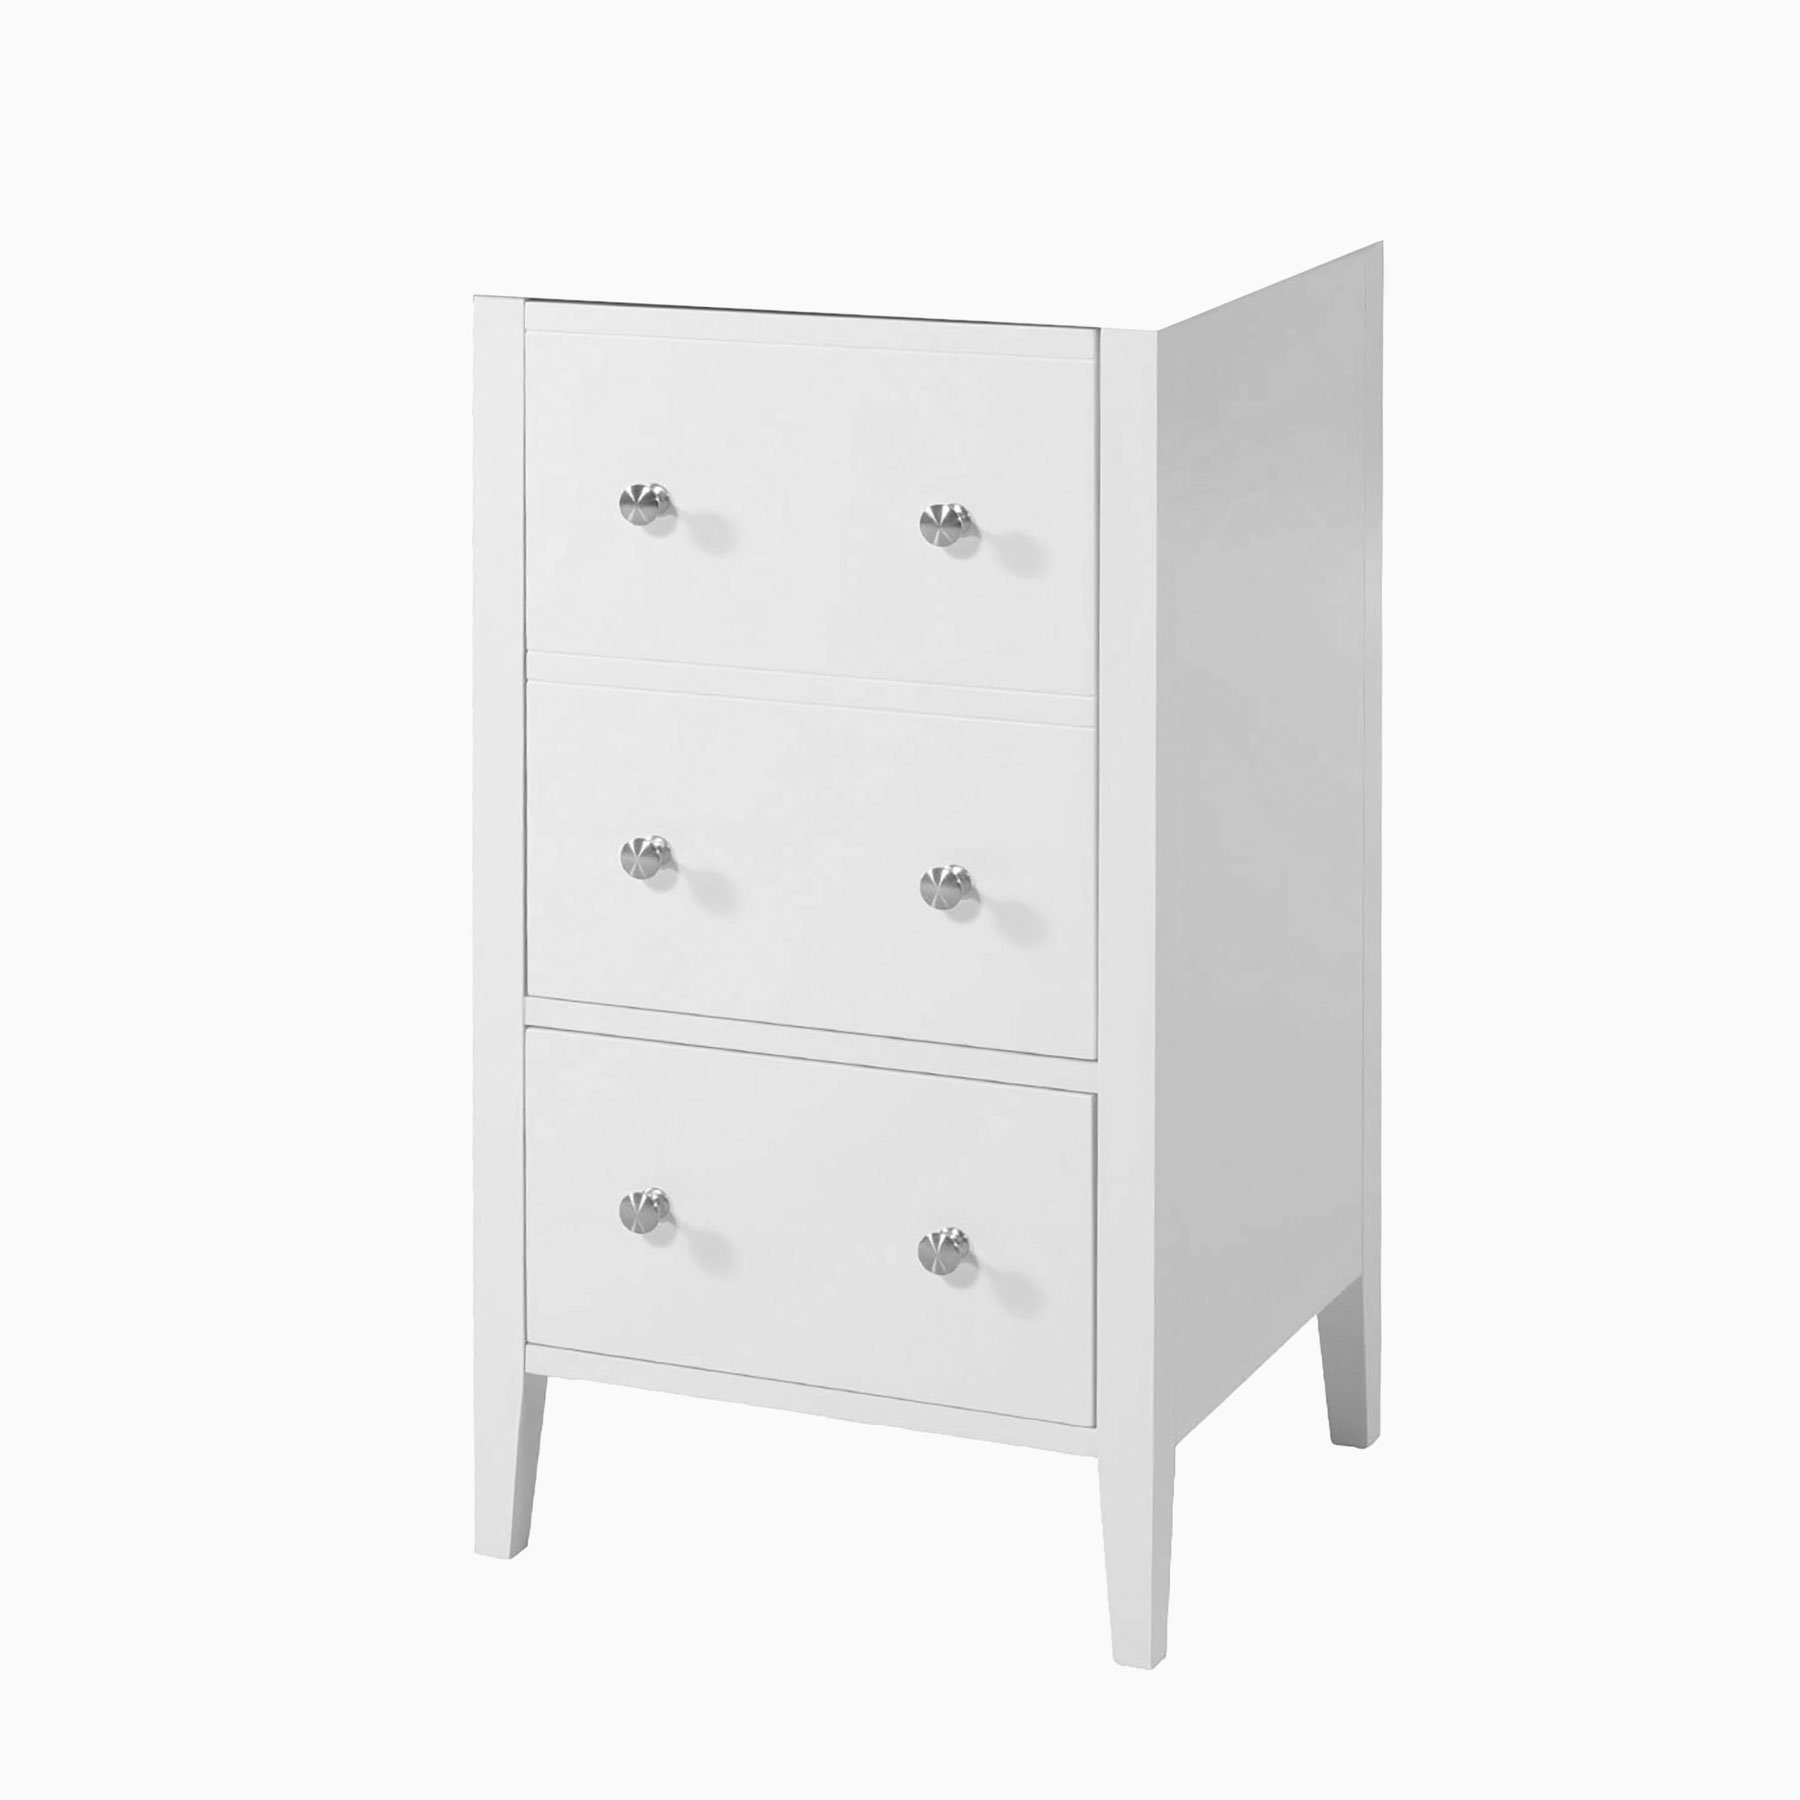 18 Addison Single Sink Freestanding Bathroom Vanity Base Only Without Sink And Top White Transitional Wood